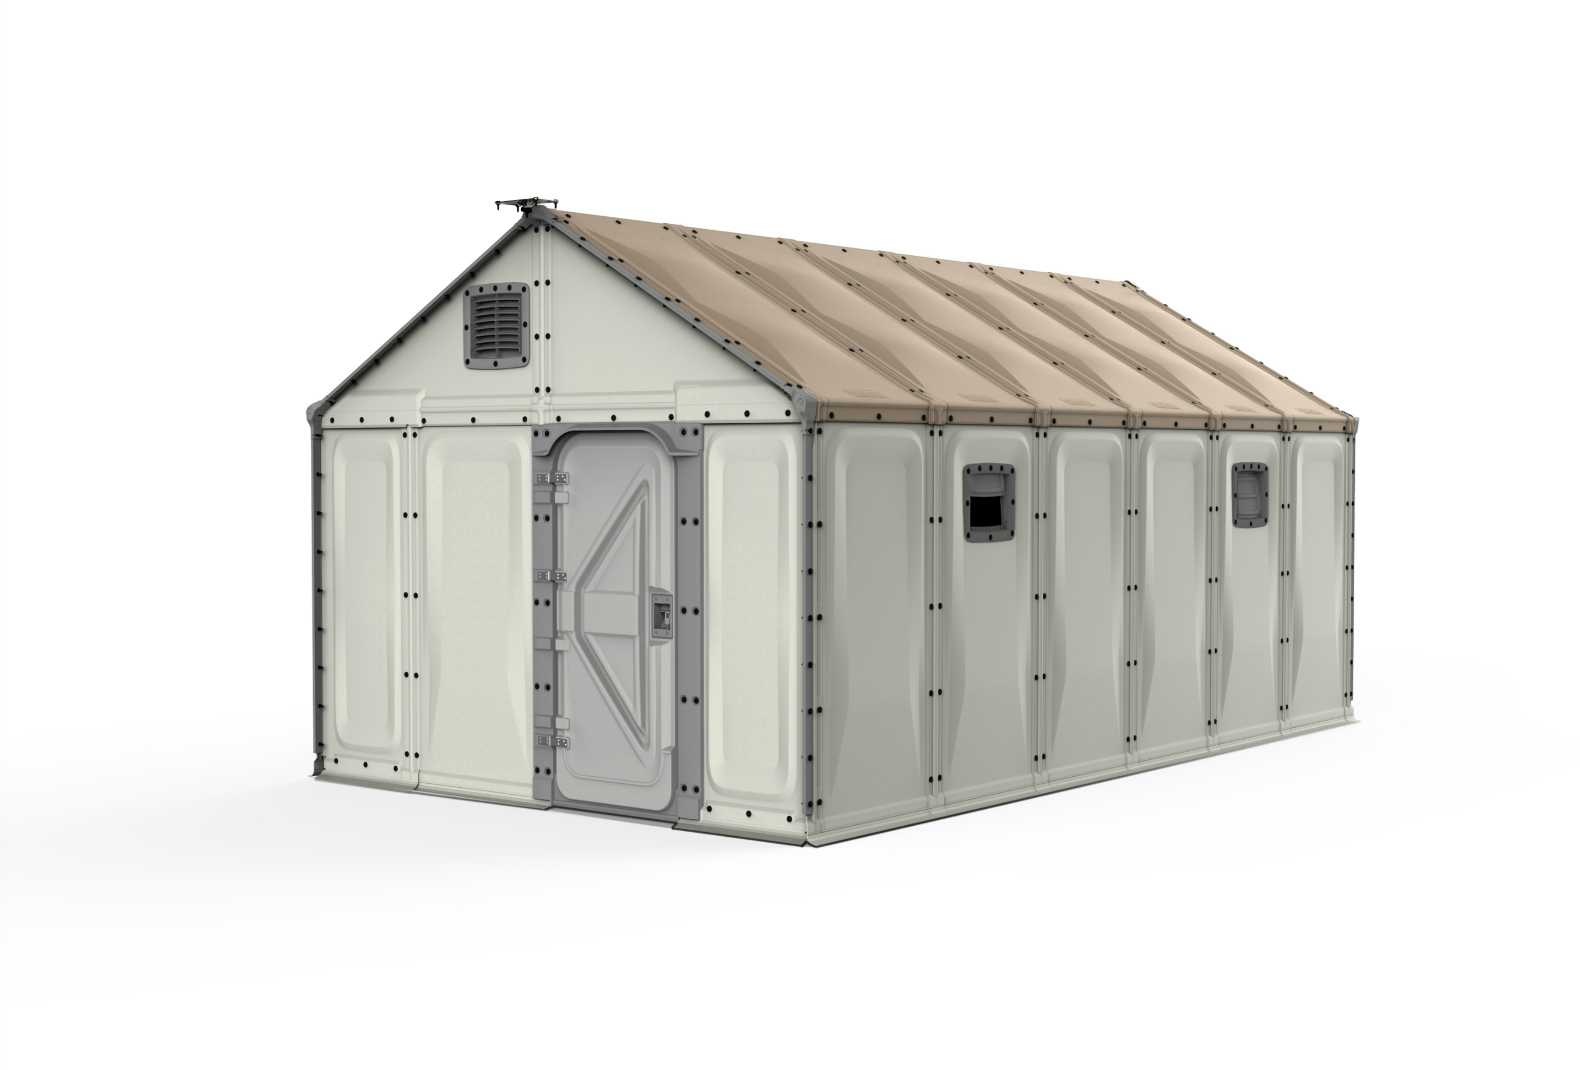 Flat Pack Shelter : Ikea flat pack refugee shelters awarded design of the year